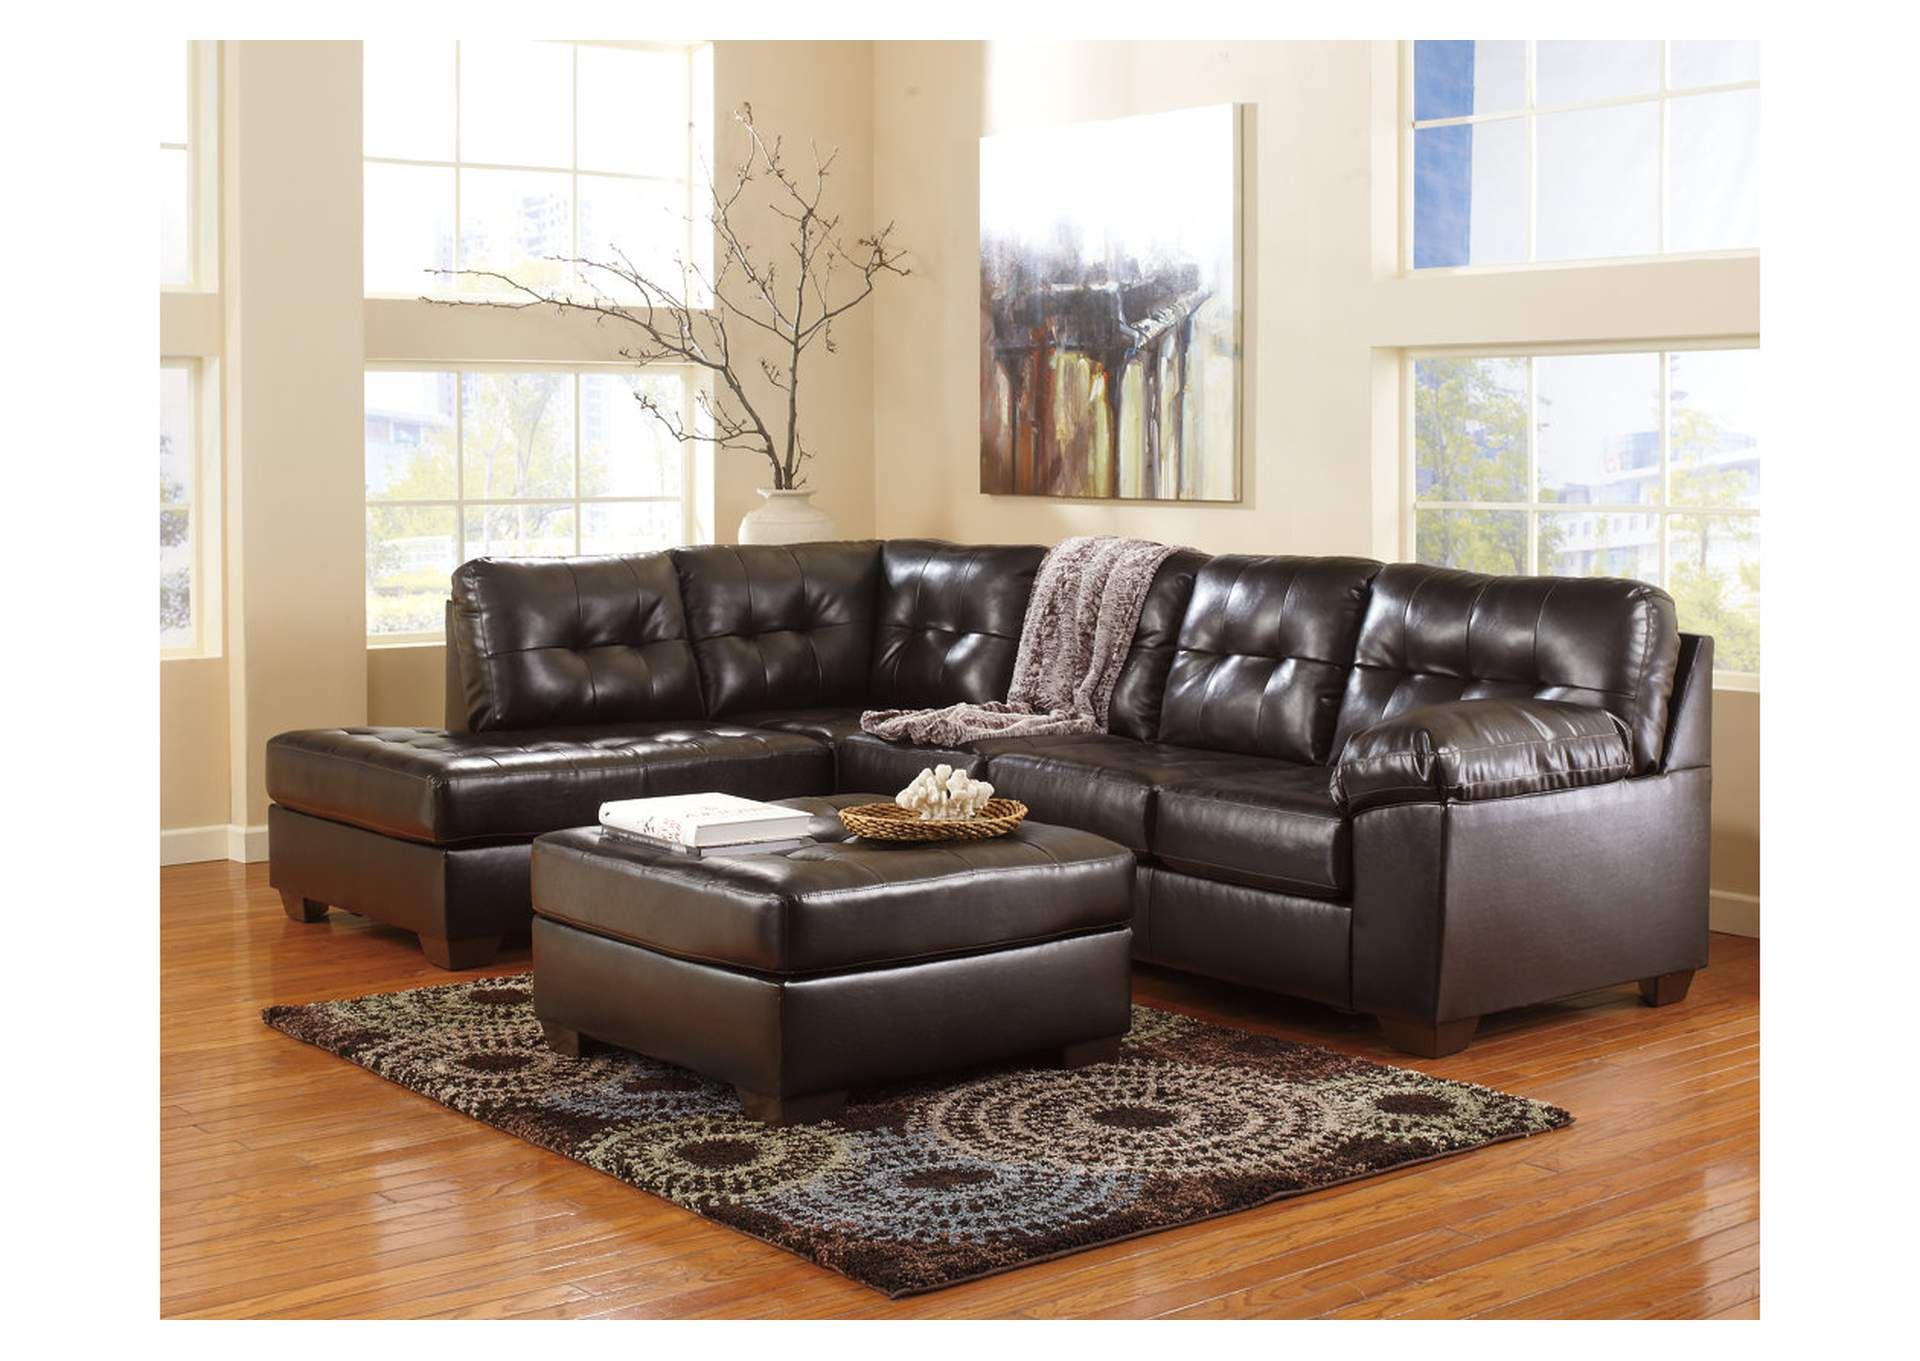 Alliston DuraBlend Chocolate Left Arm Facing Chaise End Sectional & Oversized Accent Ottoman,ABF Signature Design by Ashley